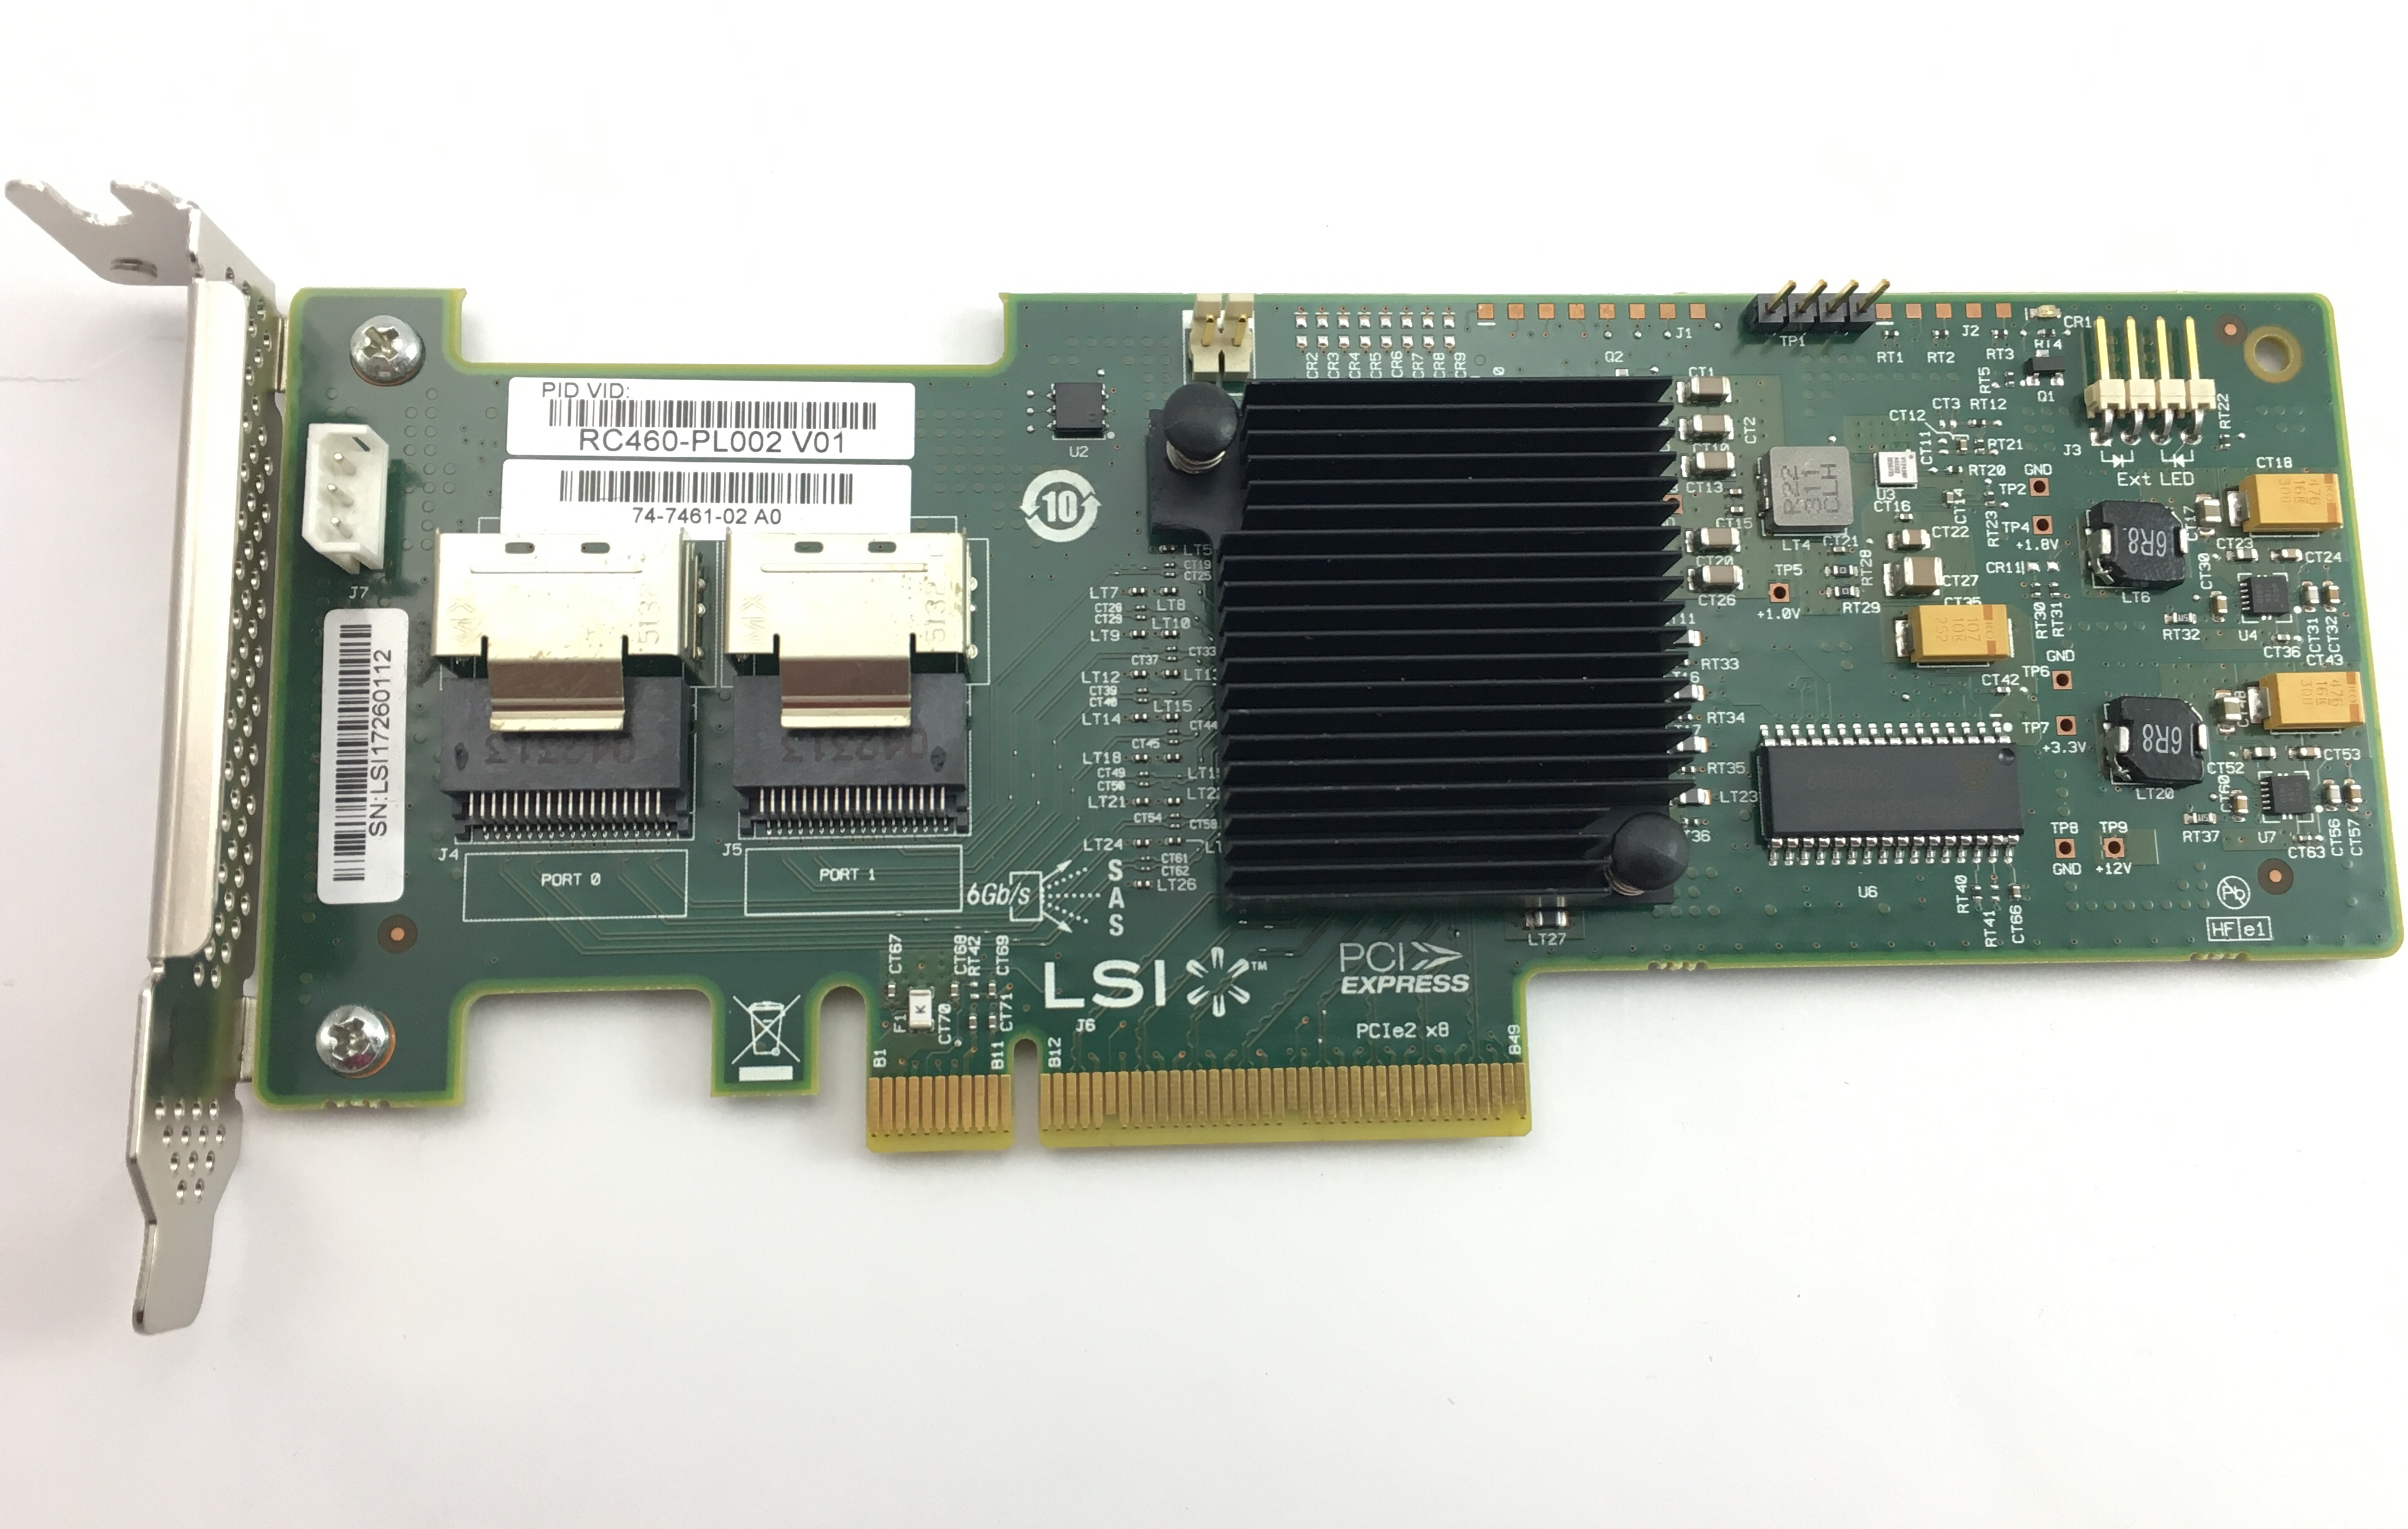 CISCO UCSLSI MR SAS 9240-8I RAID CONTROLLER (RC460-PL002)